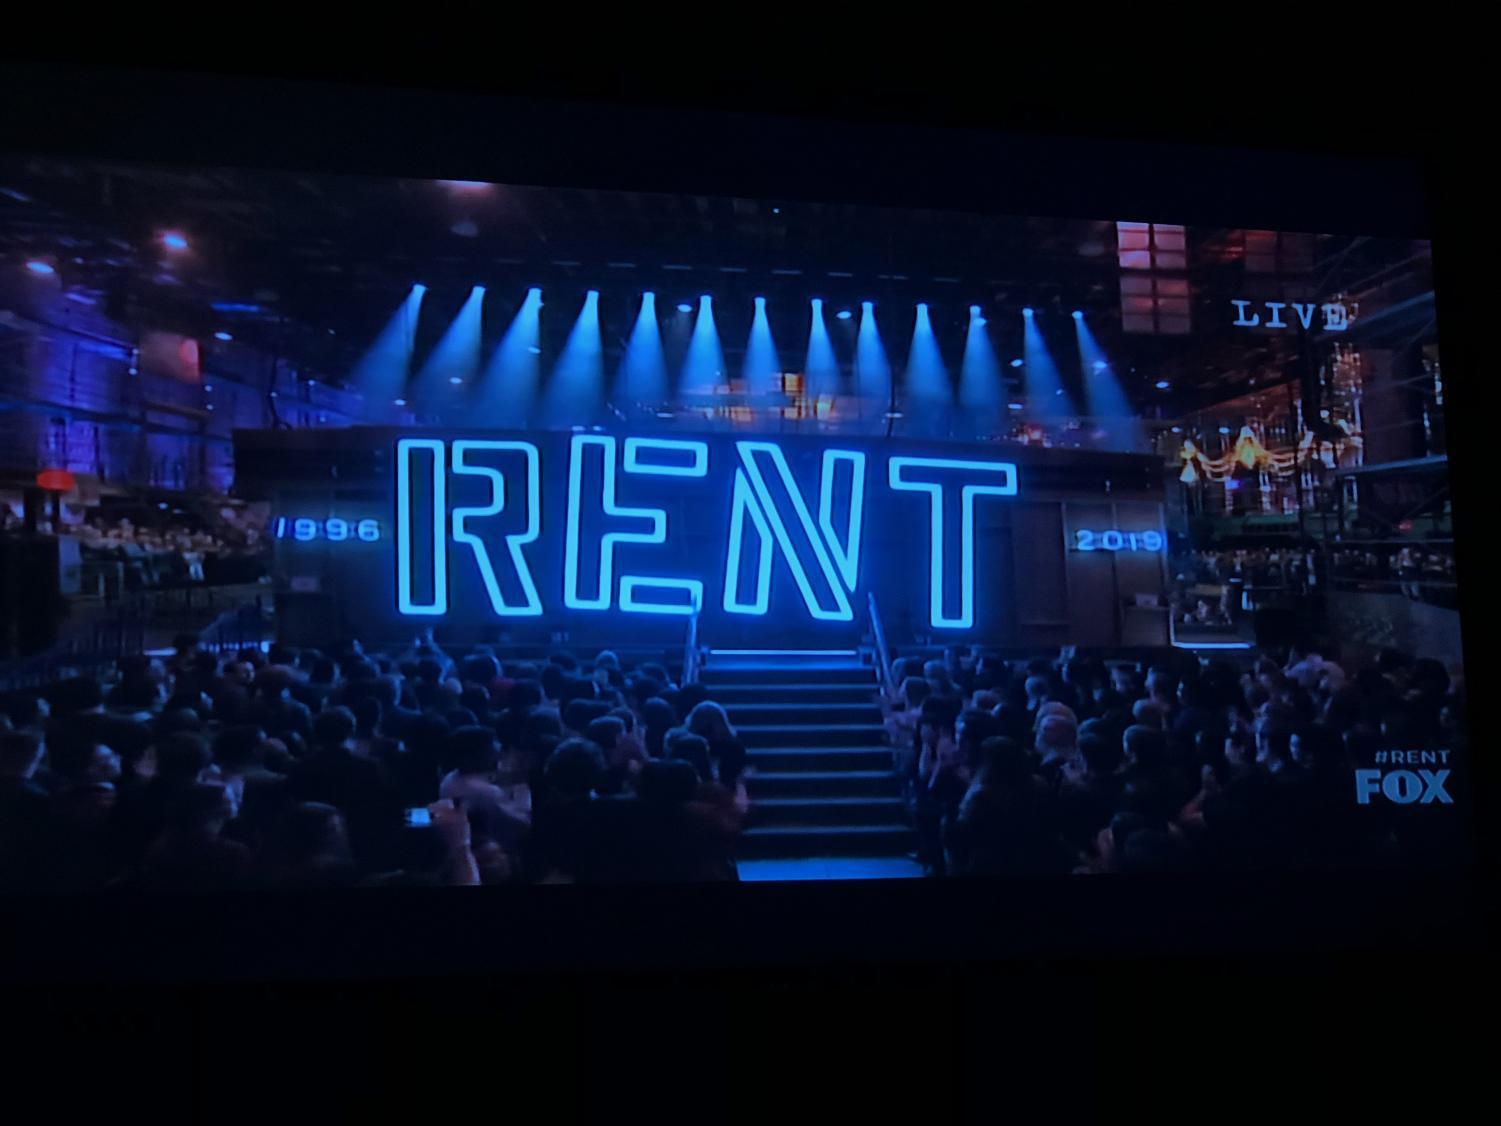 Rent live premiered at 8pm on Fox on Sunday, January 27th.